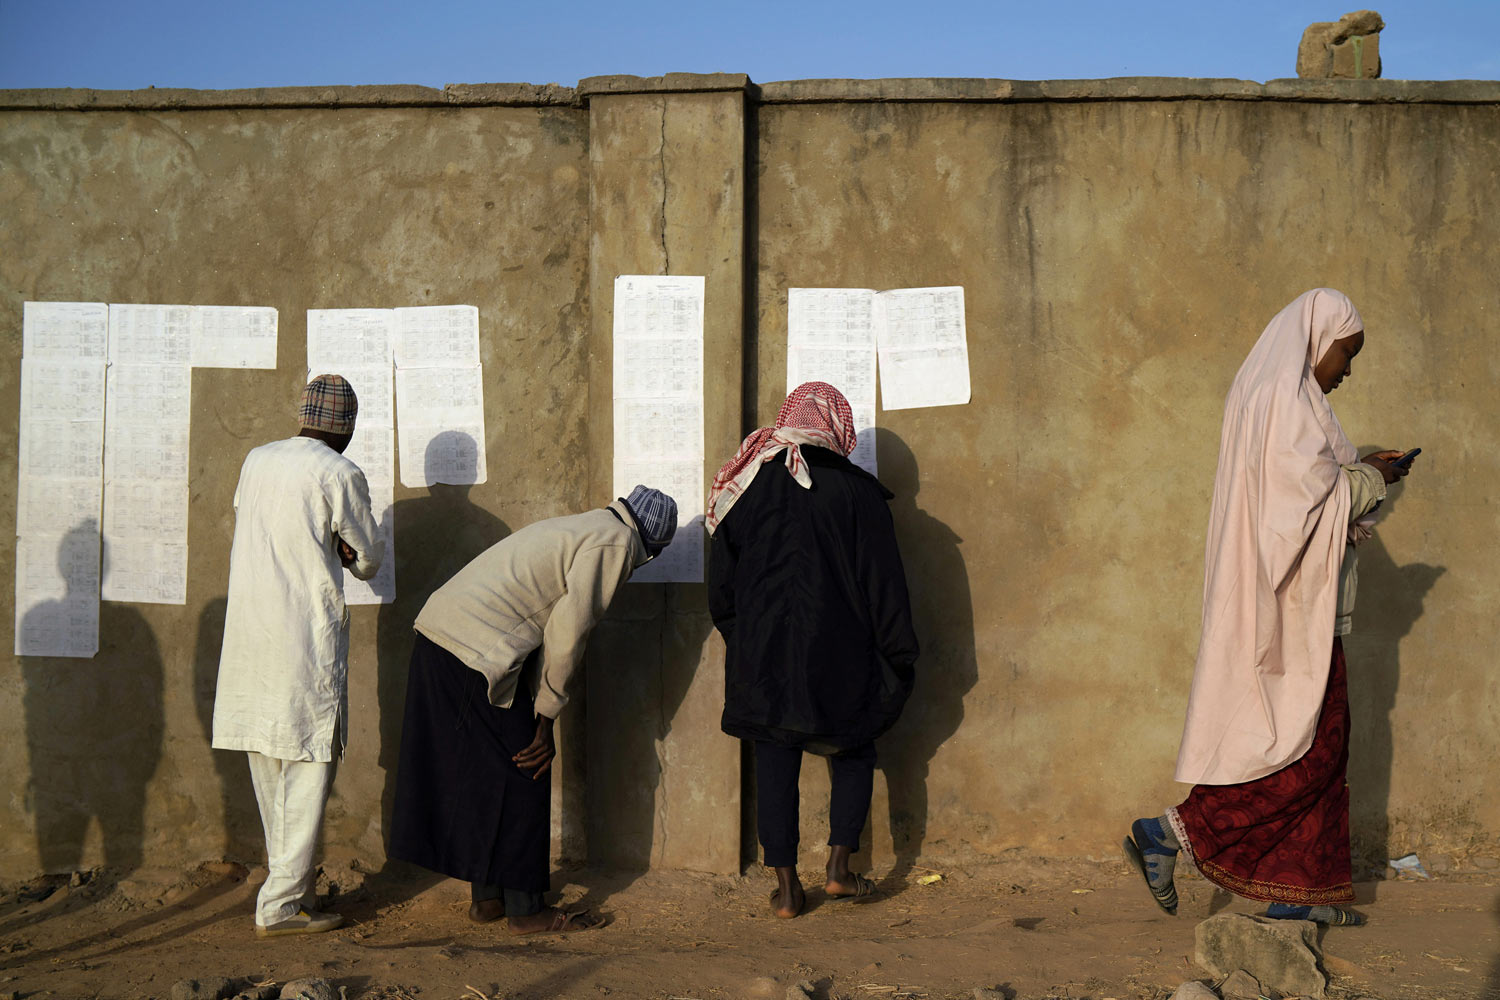 People check voters lists at a polling station in Kaduna, Nigeria, Saturday, Feb. 16, 2019. Nigeria's electoral commission delayed the presidential election until Feb. 23, making the announcement only five hours before polls were set to open. President Muhammadu Buhari is in a tight race with a former vice president, Atiku Abubakar. Both have signed pledges to contribute to a peaceful election but their supporters have kept up a wave of heated rhetoric. (AP Photo/Jerome Delay)